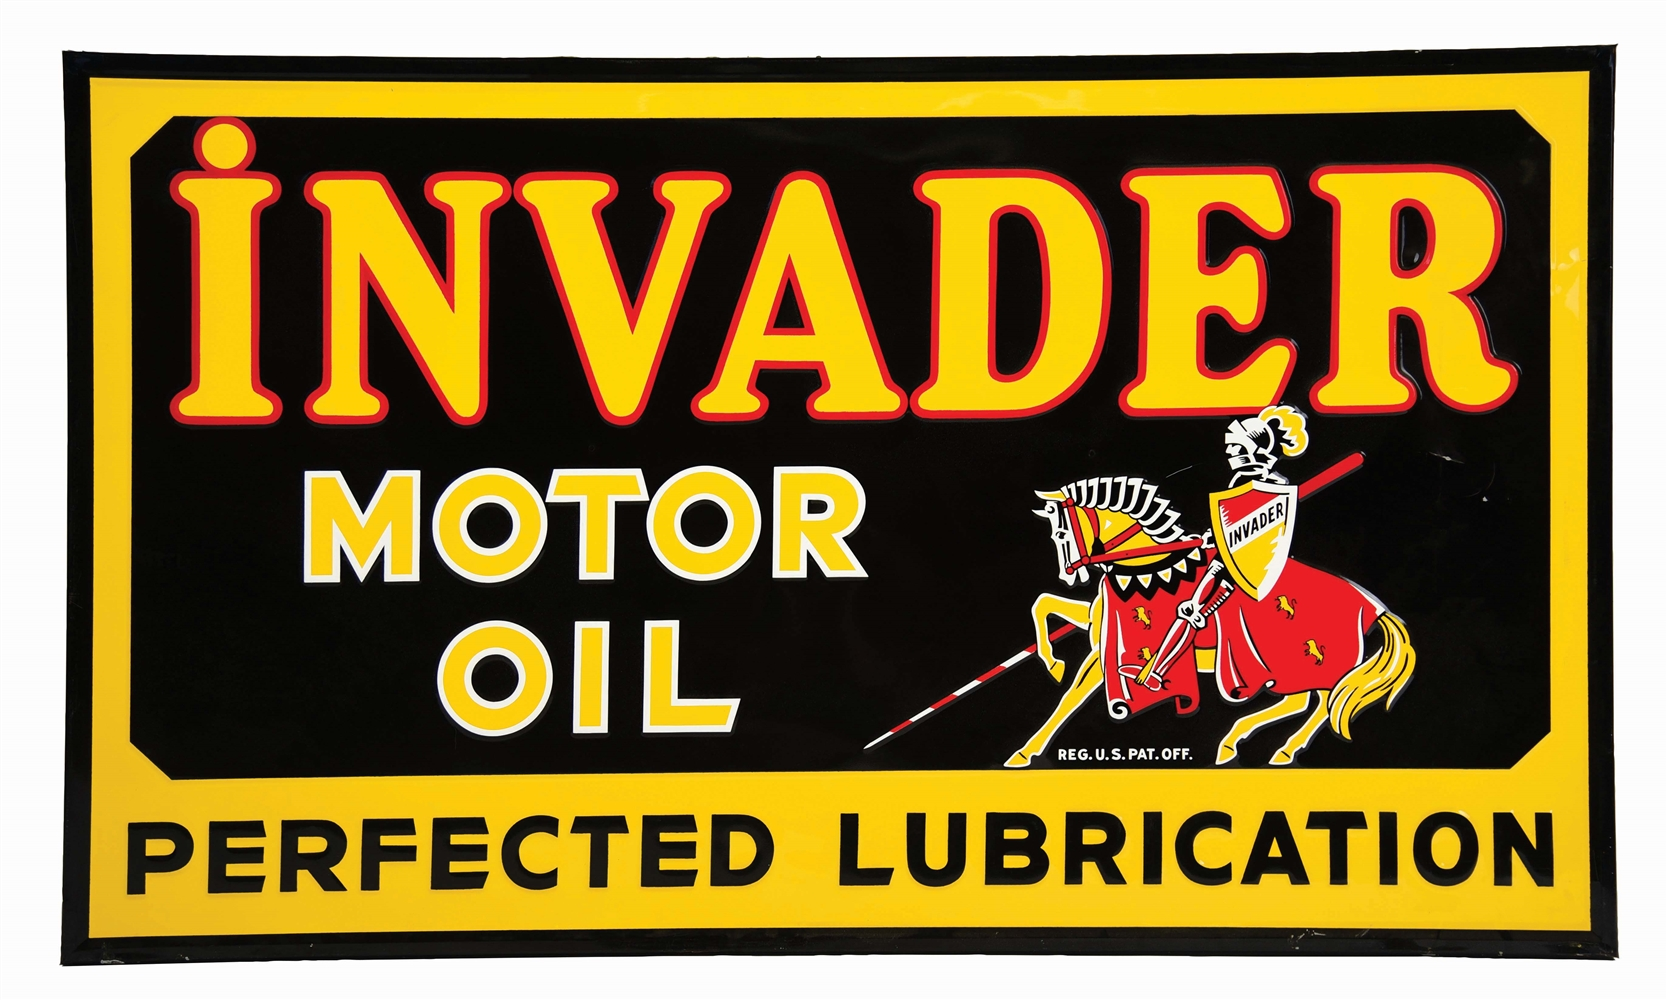 RARE & OUTSTANDING INVADER MOTOR OIL EMBOSSED TIN SIGN W/ KNIGHT GRAPHIC.